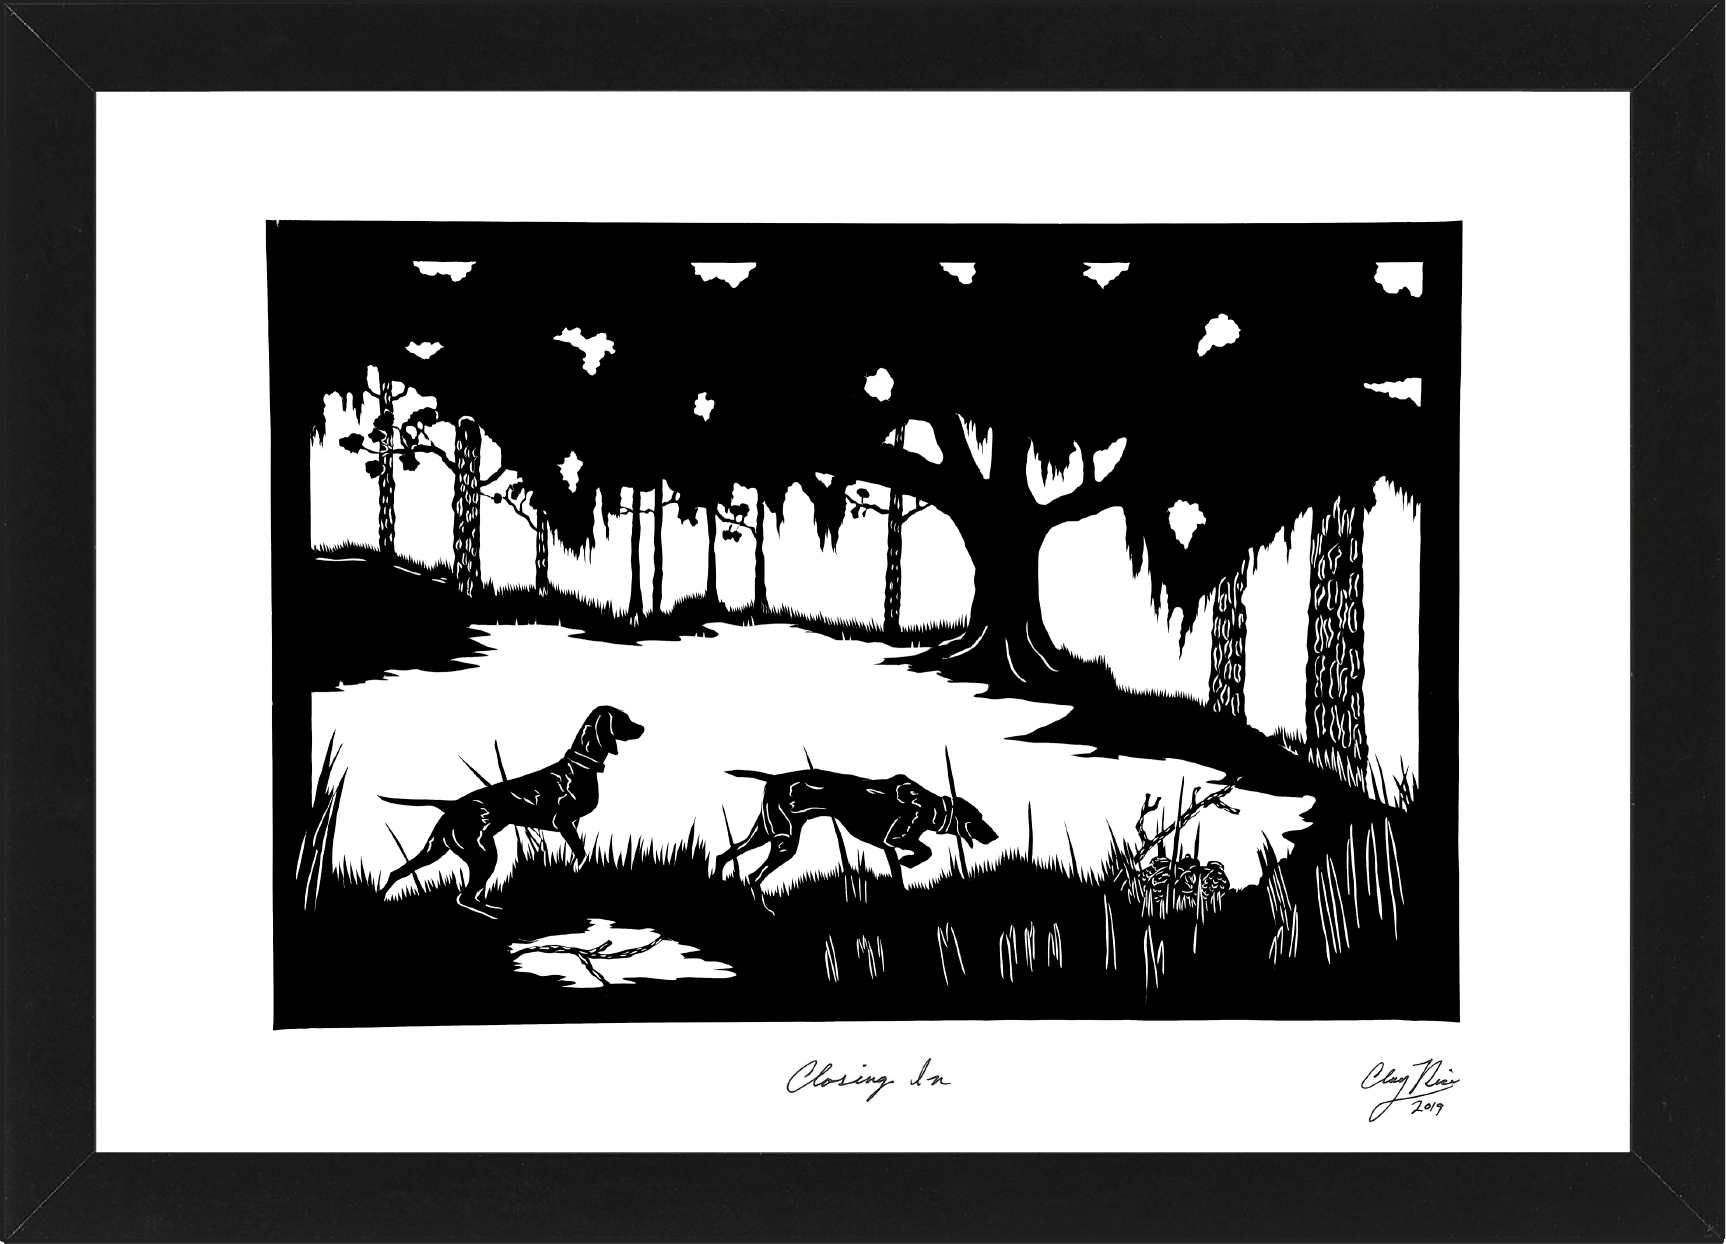 animal art of two dogs in the woods